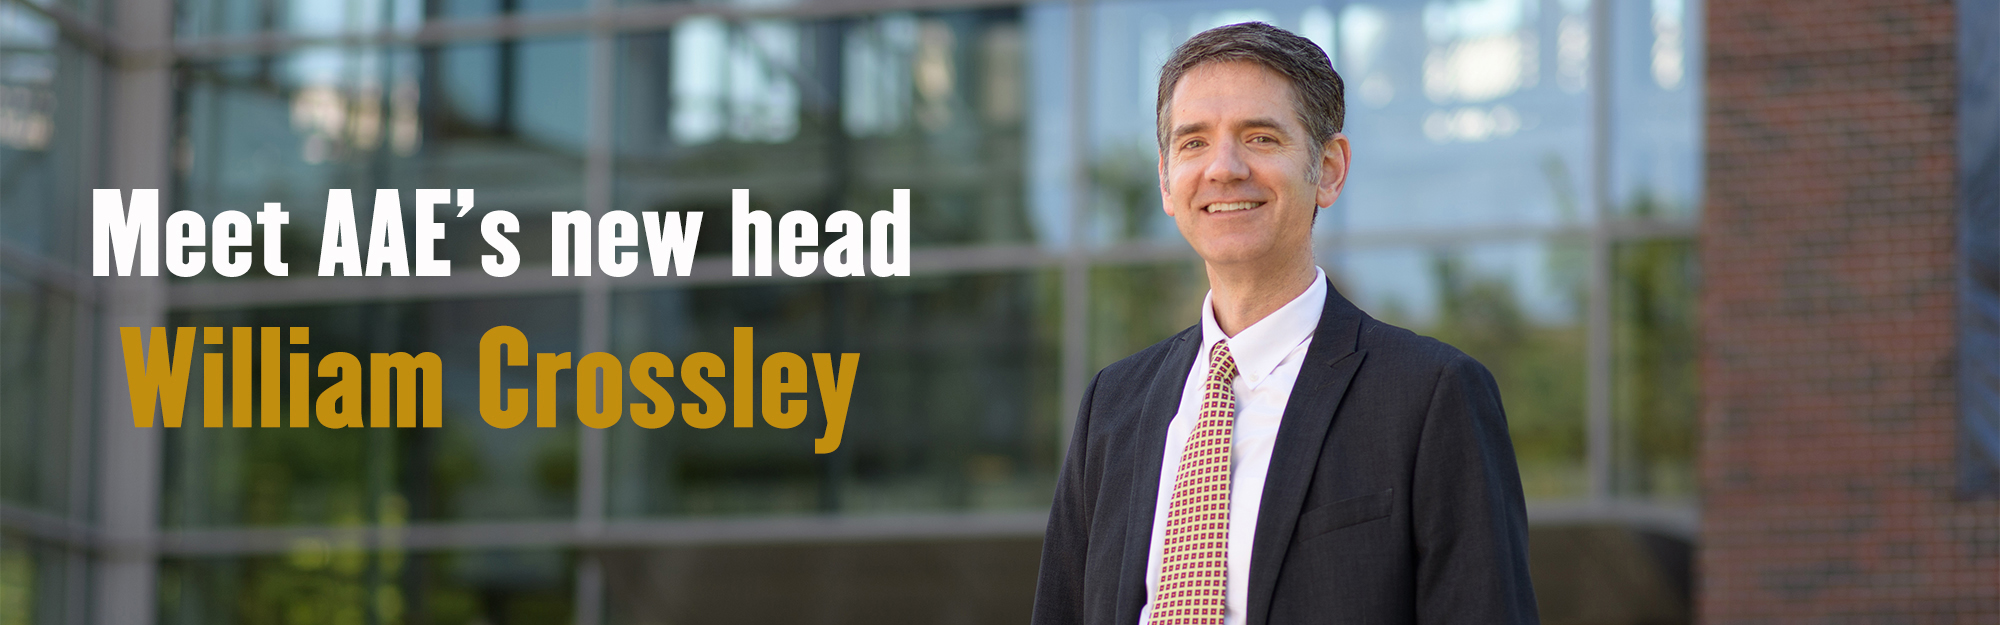 Meet AAE's New Head - William Crossley